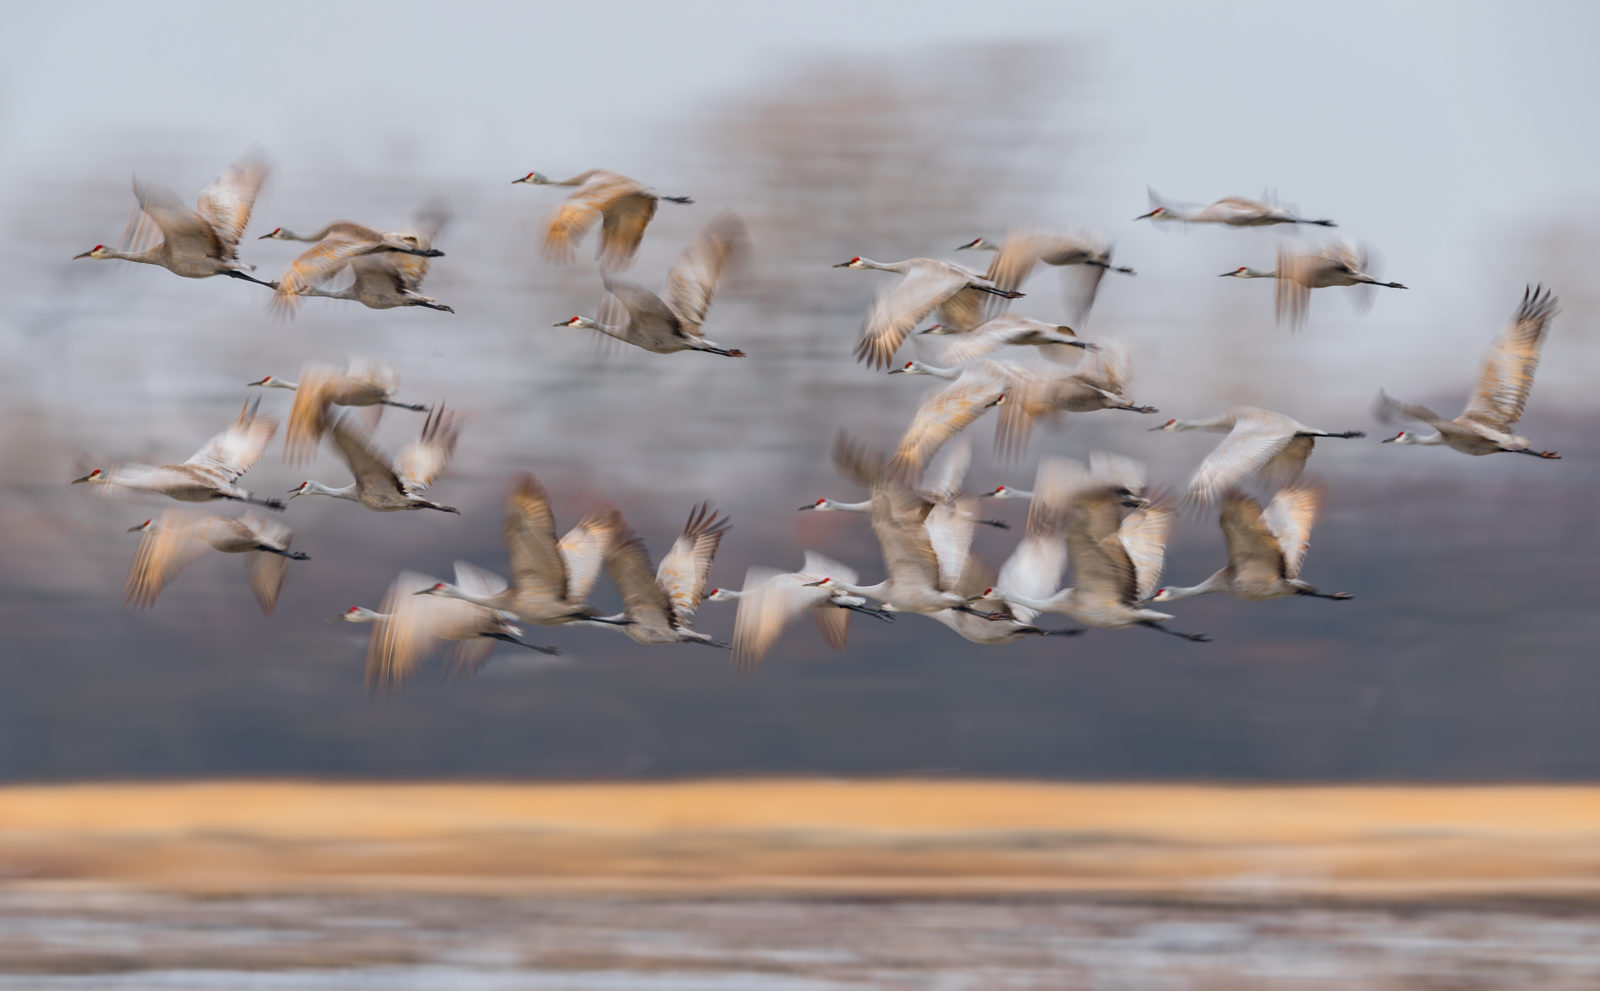 Spring Migration of Sandhill Cranes